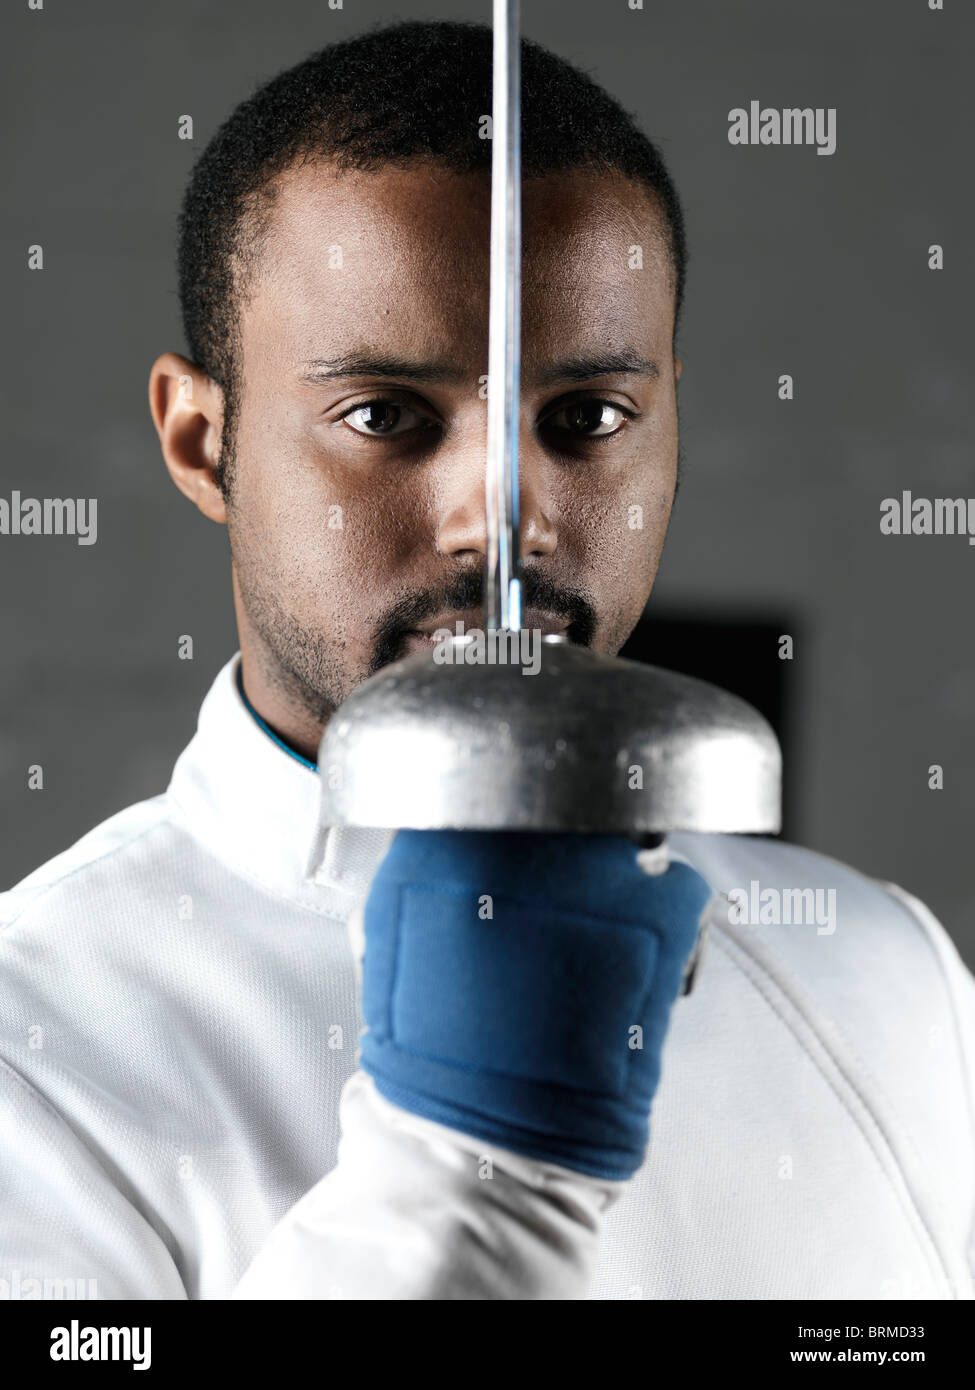 Portrait of a fencer holding an épée in front of his face - Stock Image